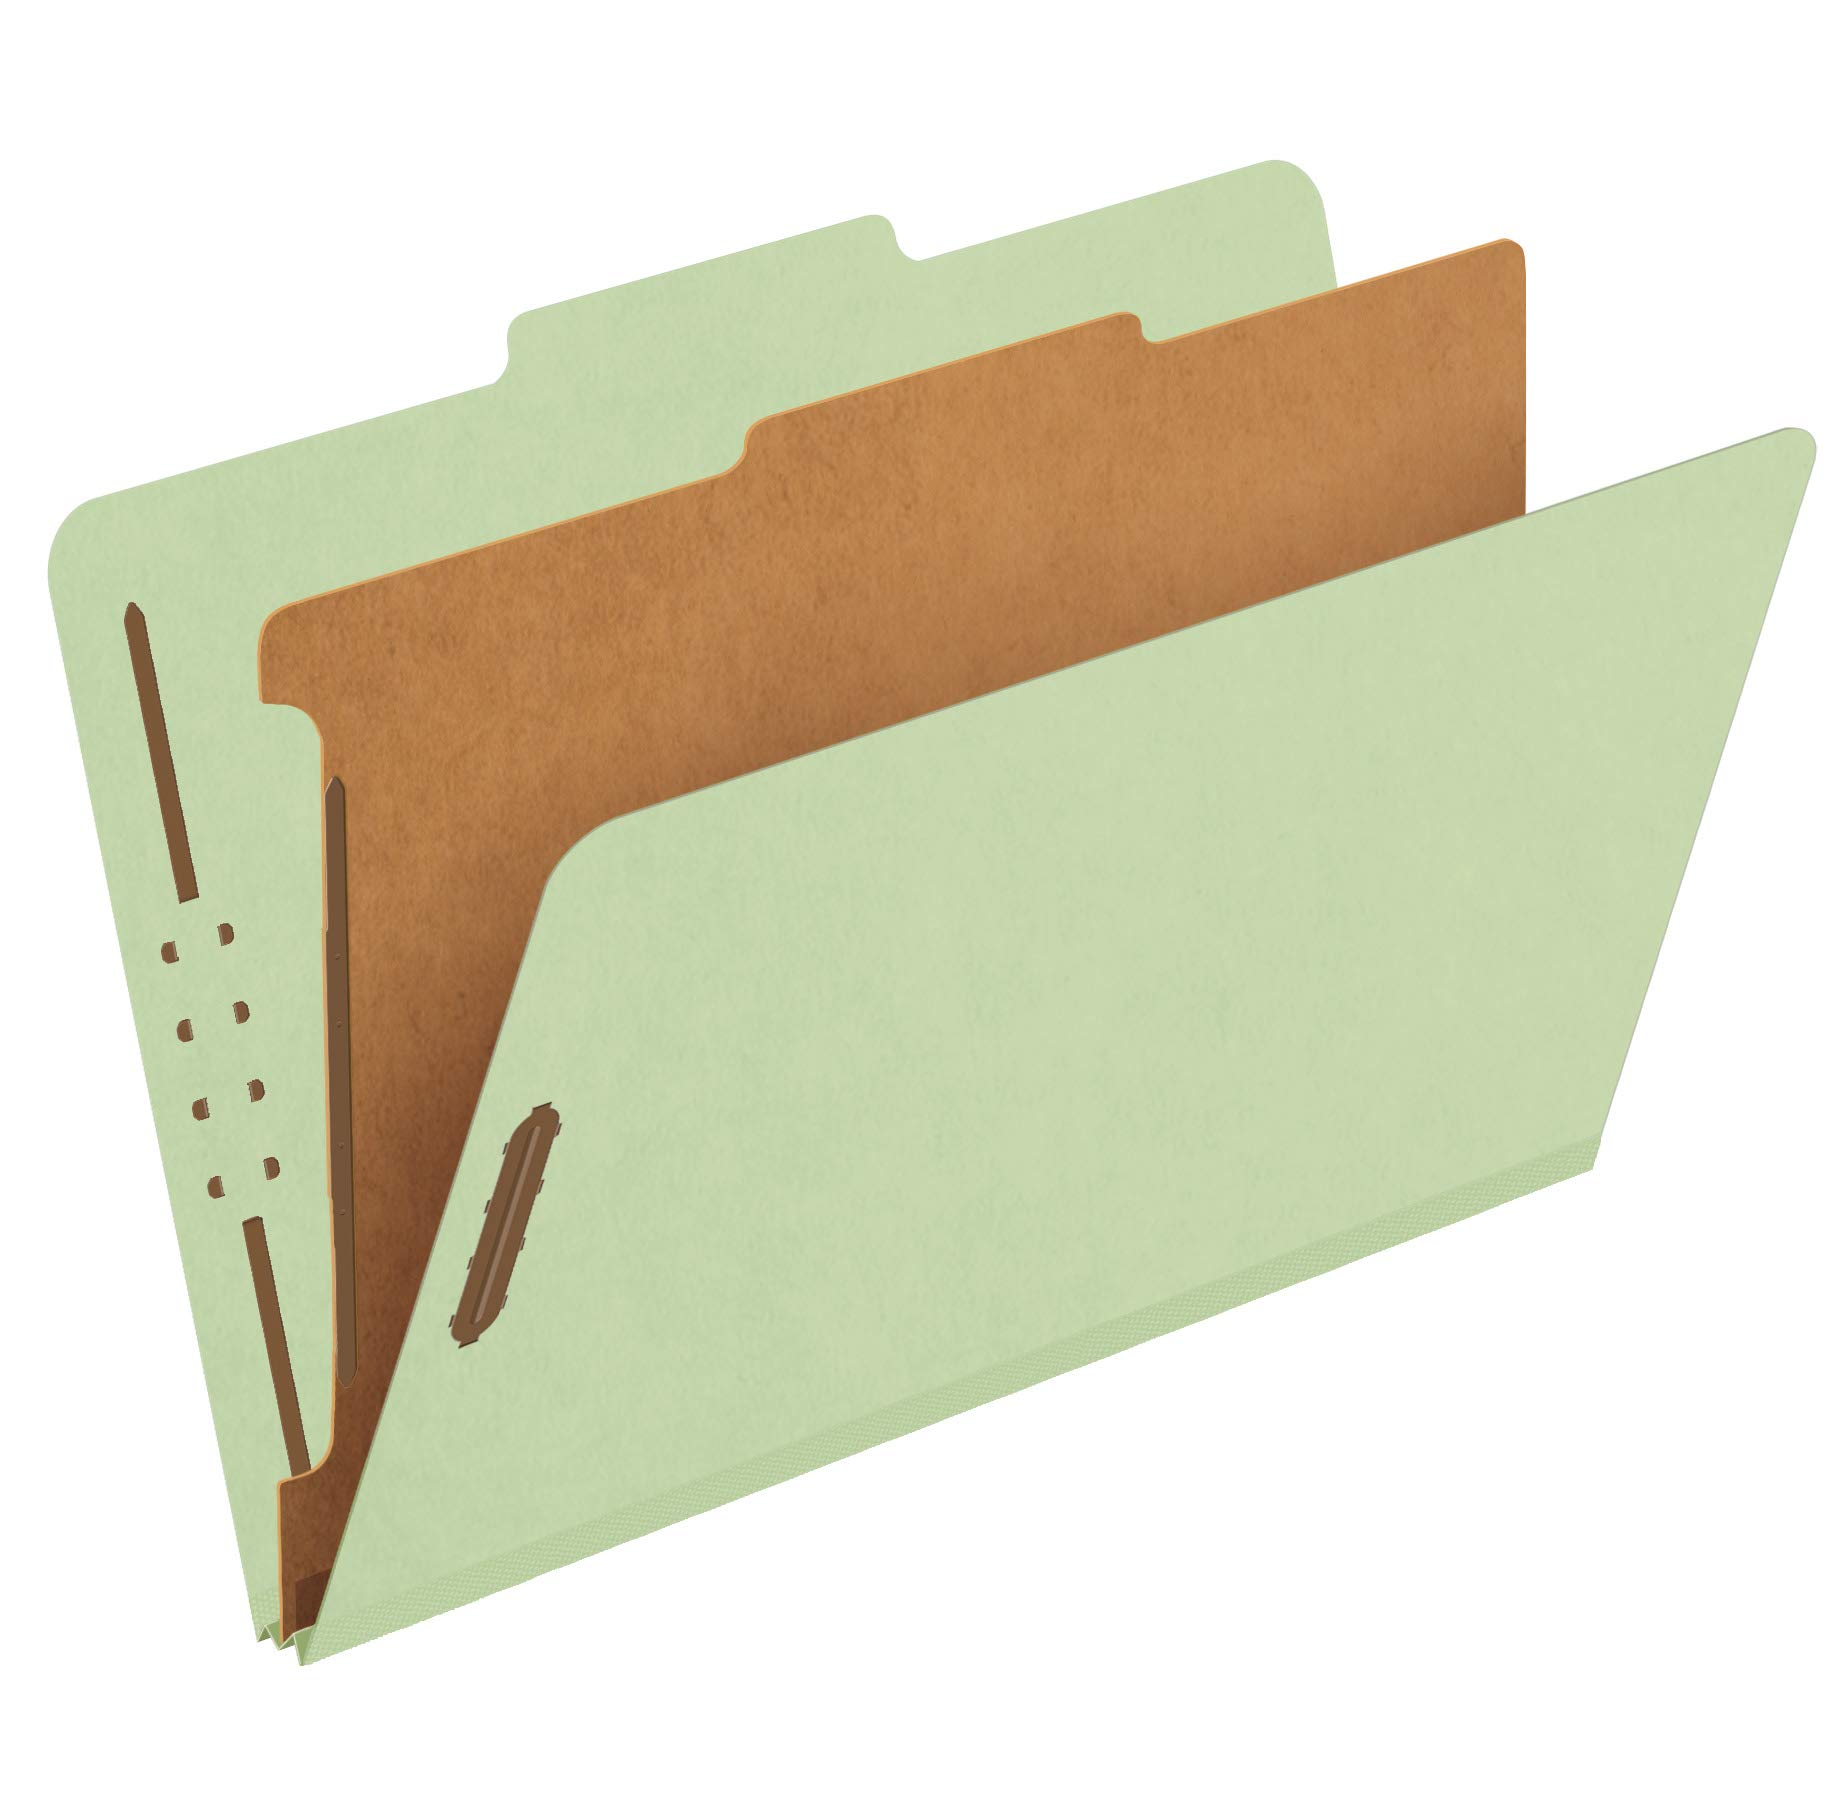 Pendaflex Recycled Classification File Folders, 1 Divider, 2'' Embedded Fasteners, 2/5 Tab Cut, Legal Size, Light Green, Box of 10 (28776R) by Pendaflex